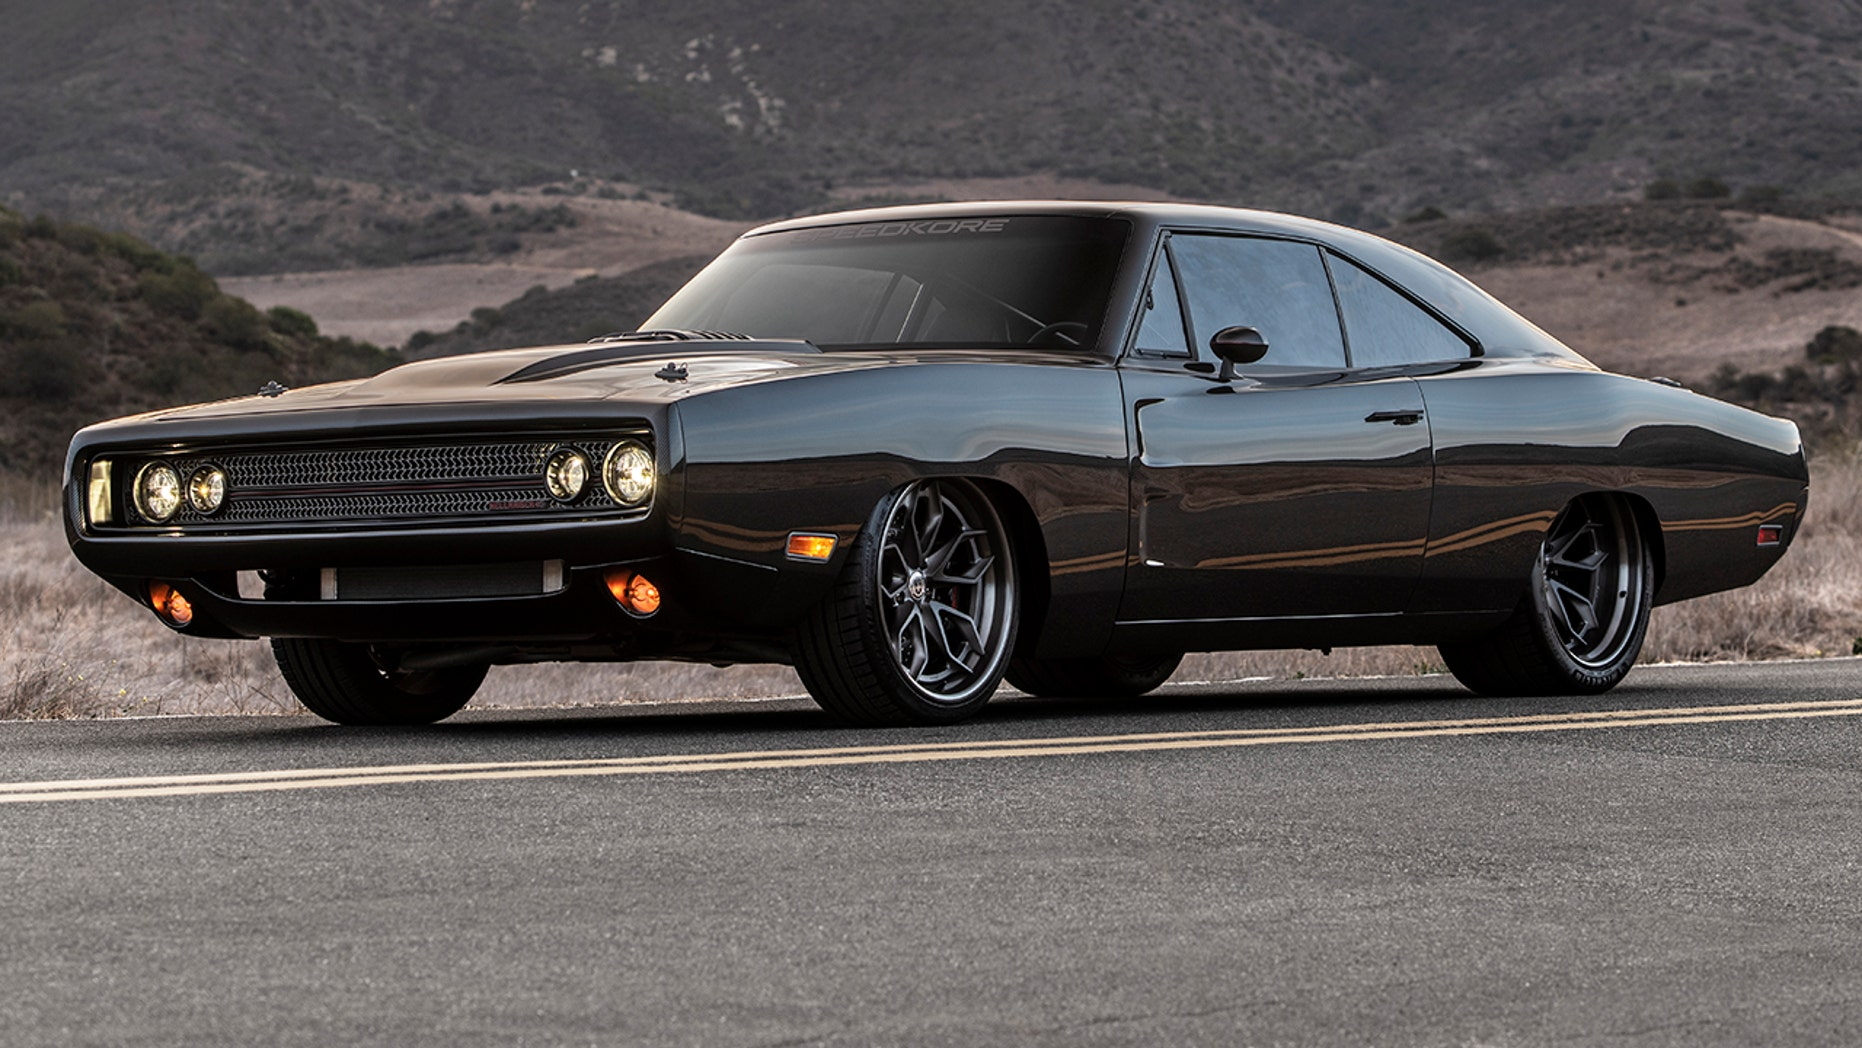 Kevin Hart's 1970 Dodge Charger